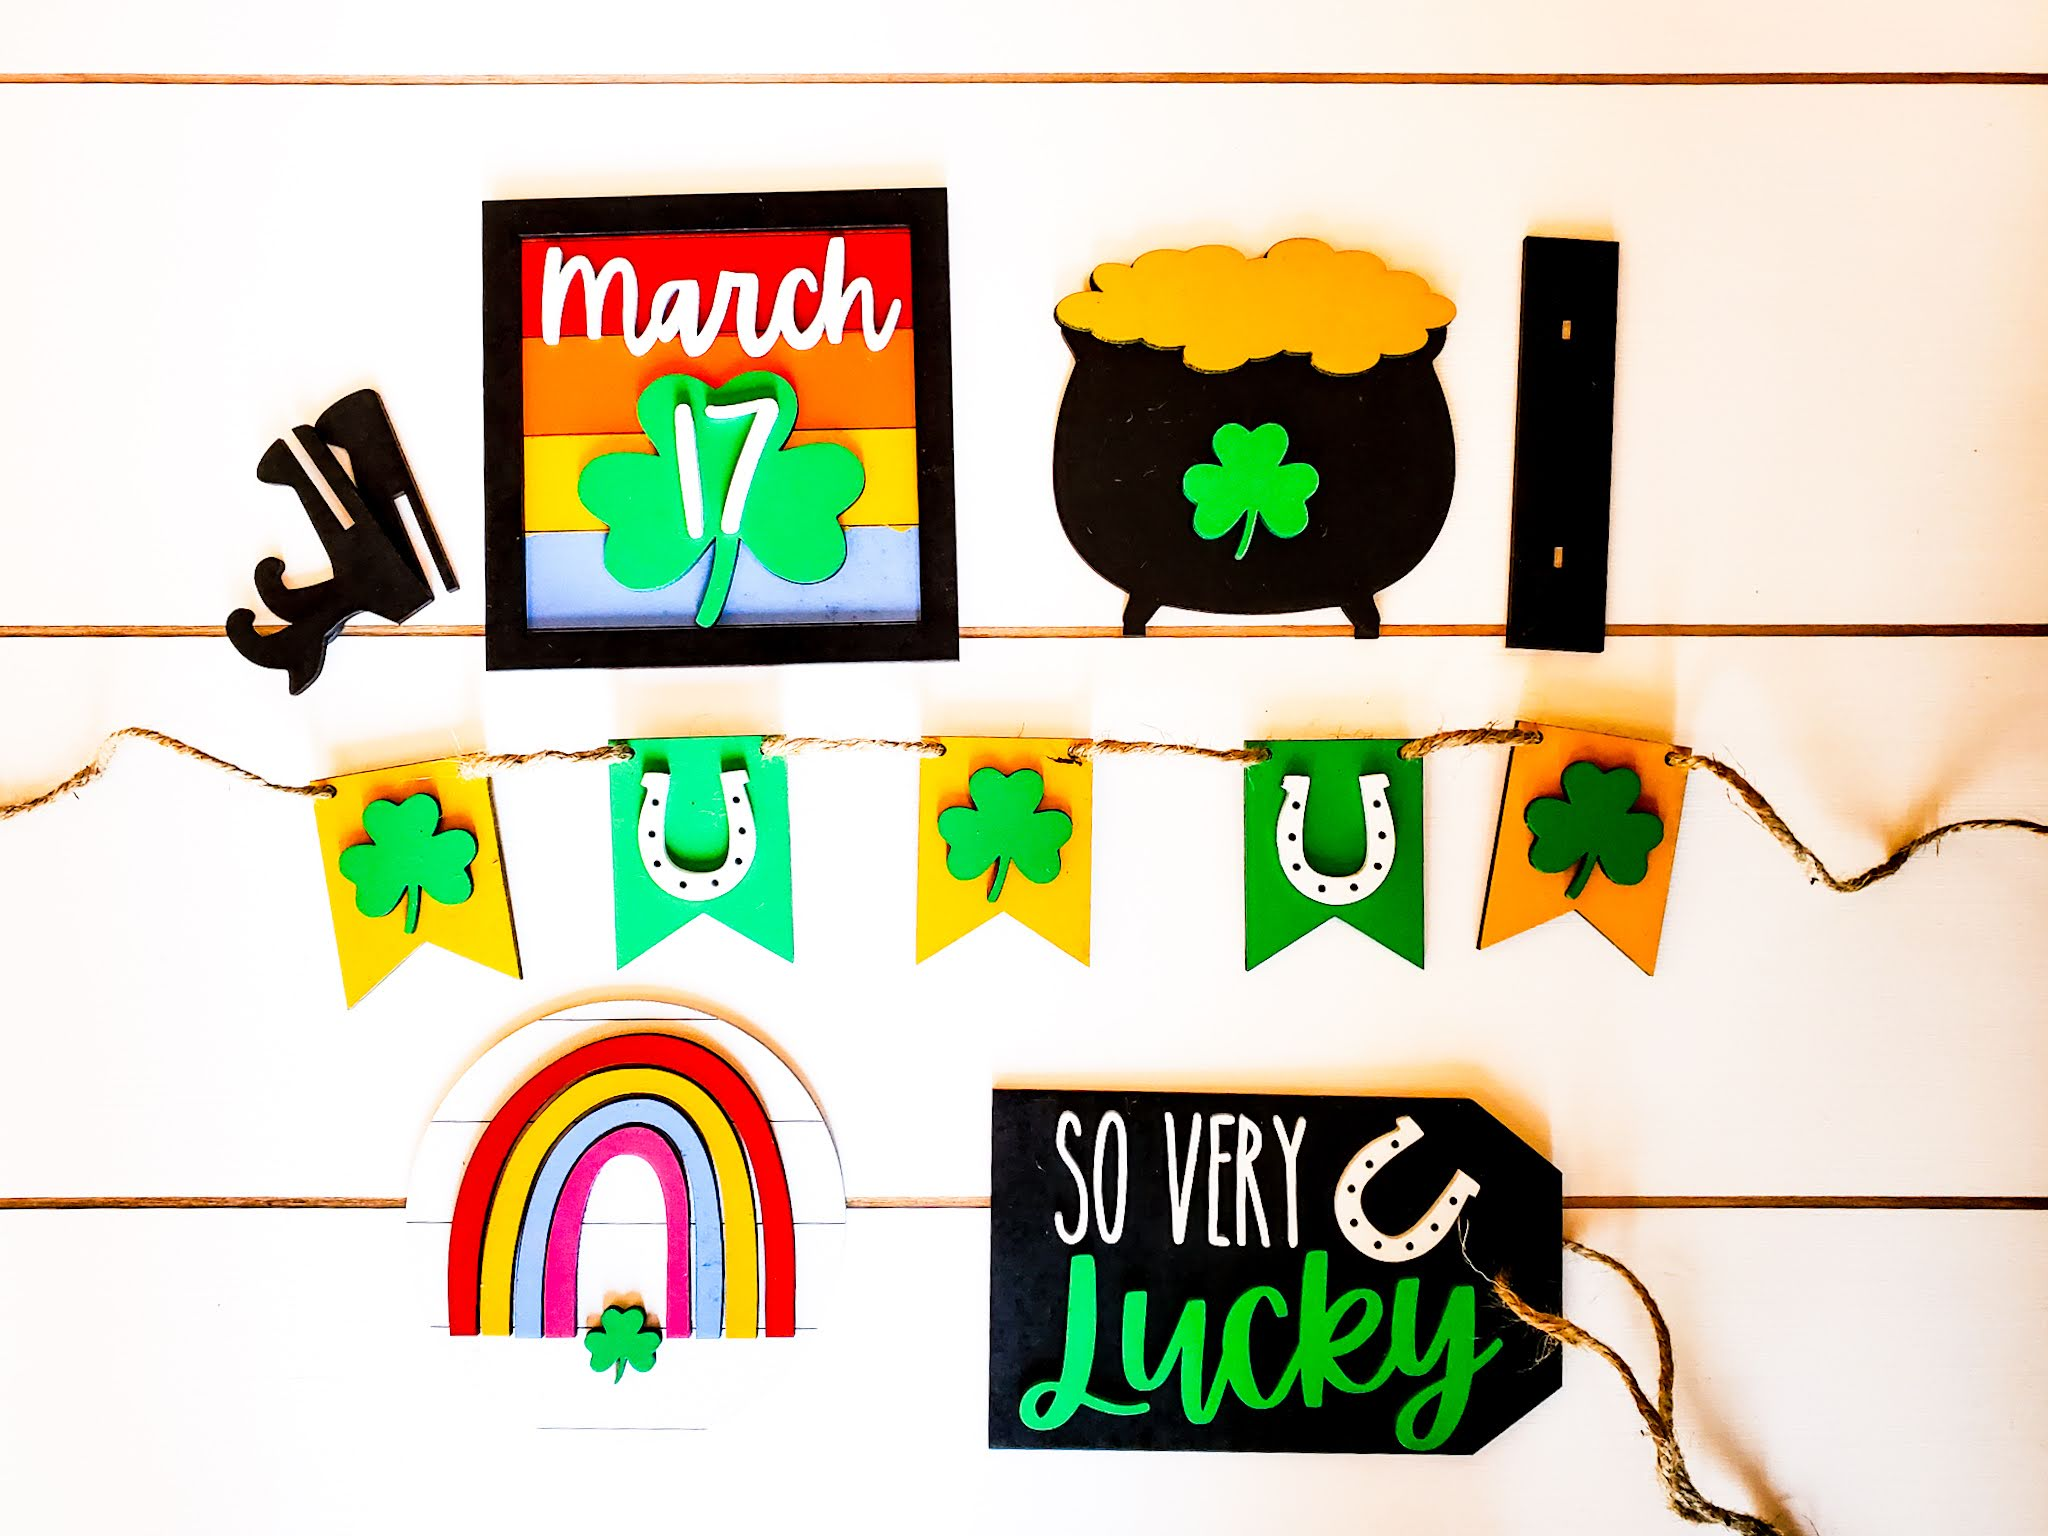 St. Patrick's Day Tiered Tray Decor | St. Patty's Day Tiered Tray Decor | Tiered Tray Decor Bundle | Tiered Tray Signs | Tiered Tray DIY Kit